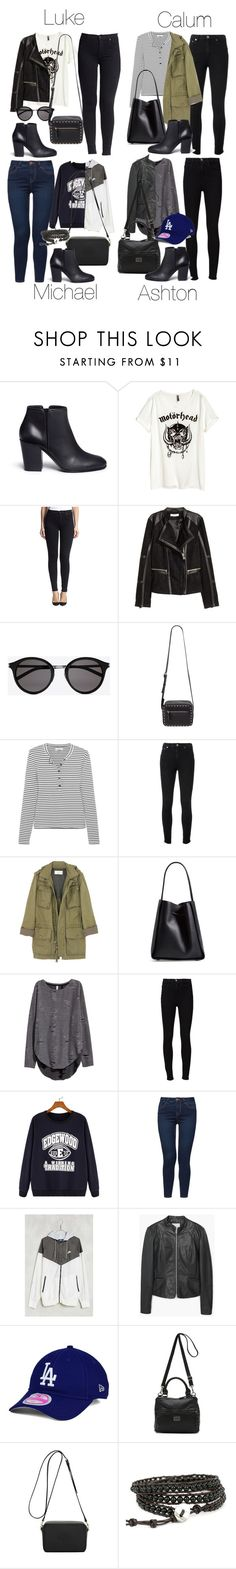 """""""5SOS Styles: Heeled Leather Ankle Boots (Autumn/Winter)"""" by fivesecondsofinspiration ❤ liked on Polyvore featuring Giuseppe Zanotti, Hudson Jeans, Yves Saint Laurent, Forever 21, Madewell, J.Crew, 3.1 Phillip Lim, Frame Denim, New Look and Without Walls"""